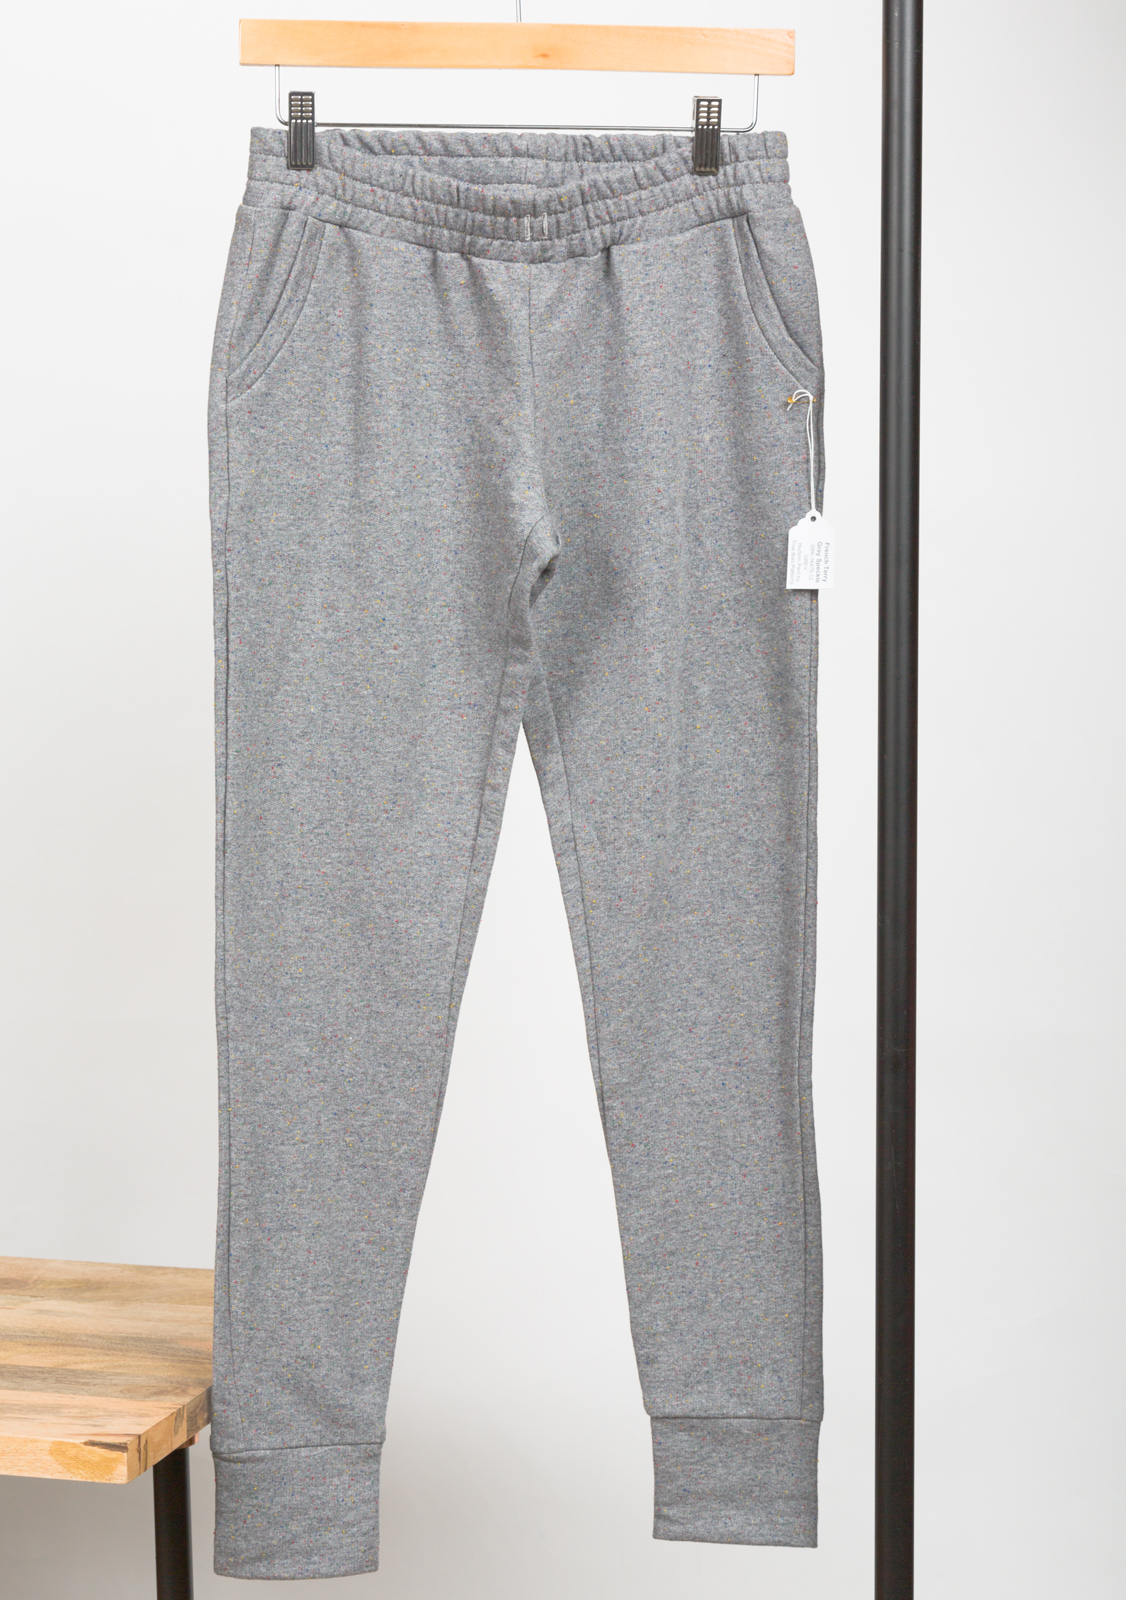 HUDSON PANT  DESIGNED BY    TRUE BIAS PATTERNS ,  MADE BY   PINK SUEDE SHOE ,  FEATURING   FRENCH TERRY GREY SPECKLE